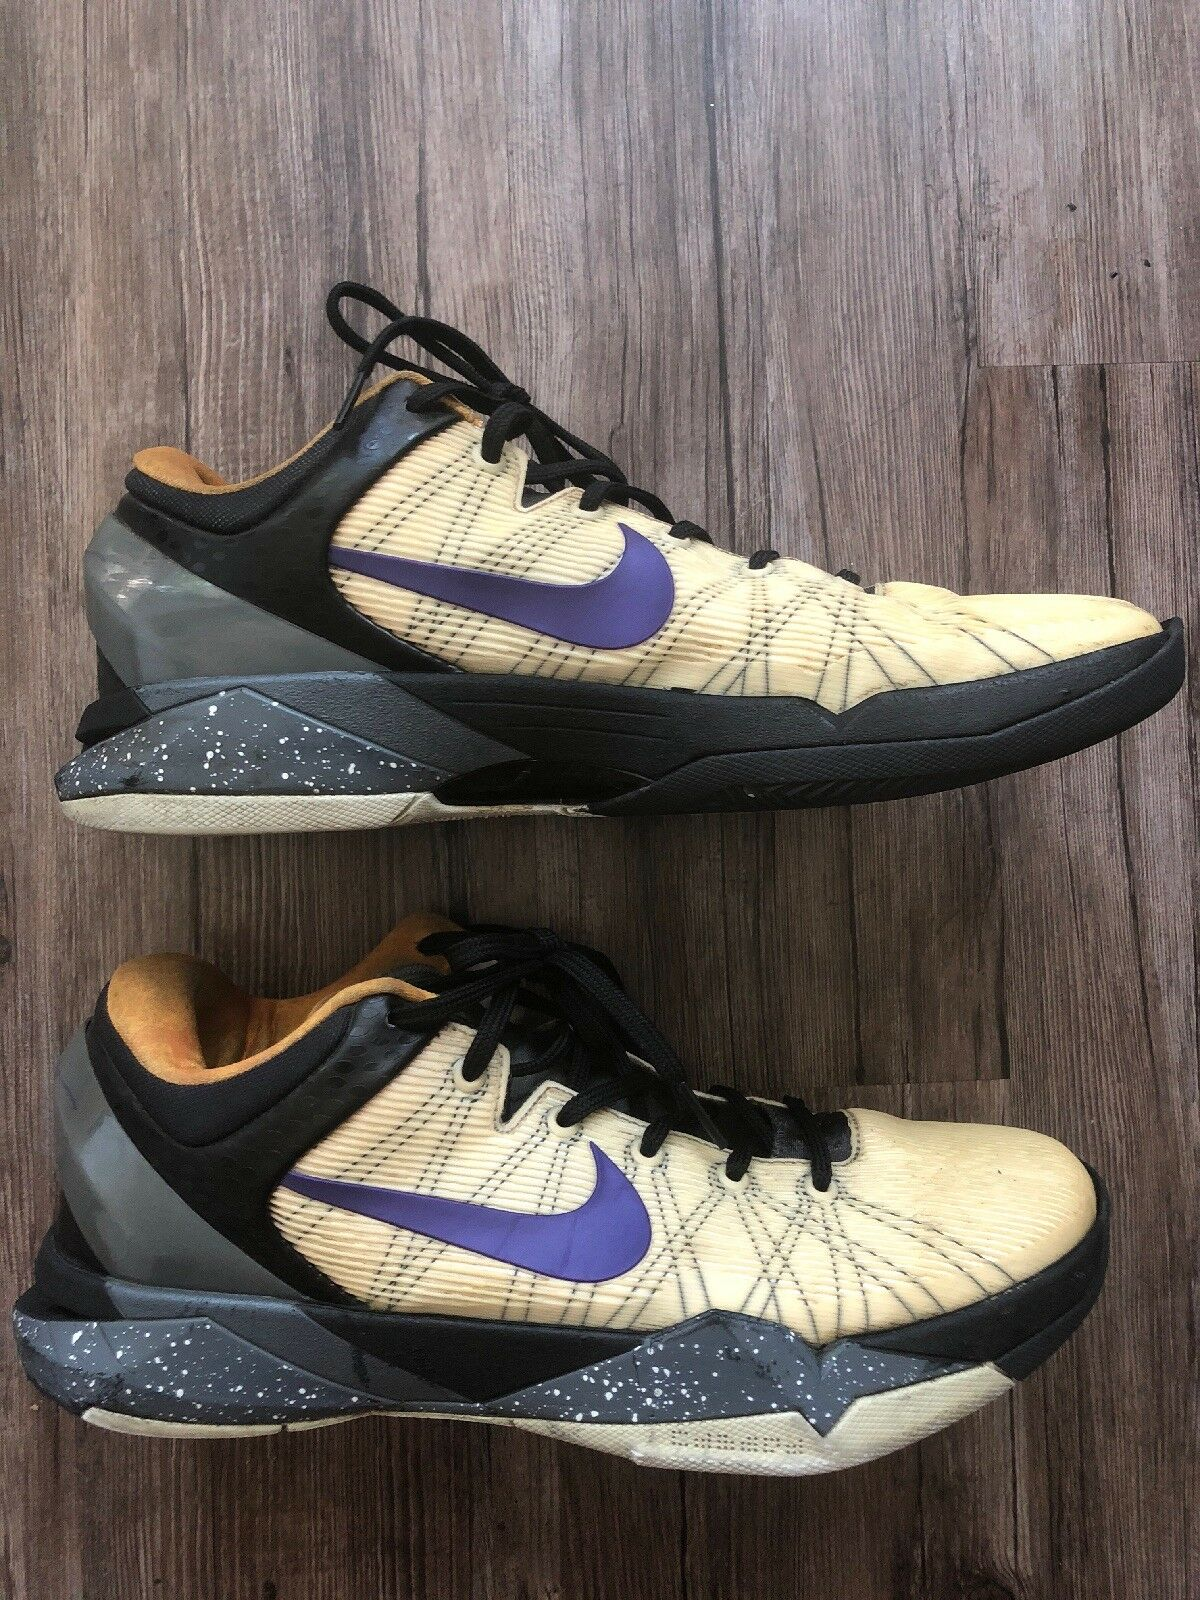 """Nike Zoom Kobe VII 7 System """"Opening Day"""" Lakers 10.5 Purple Gold 488371-103 SZ 10.5 Lakers 9cacee"""